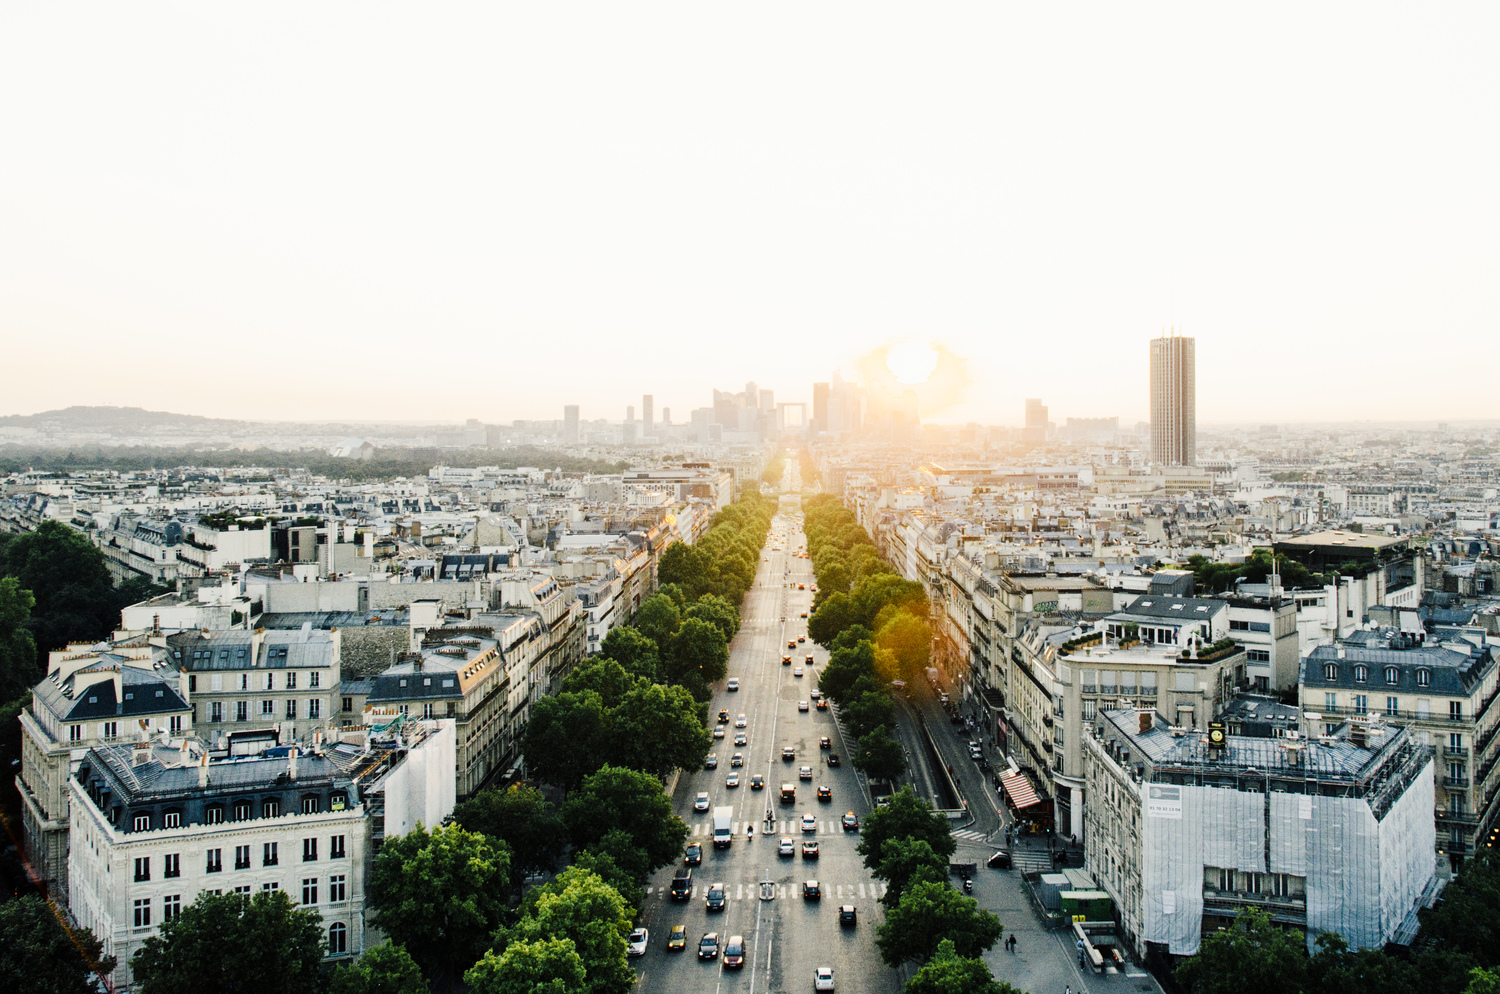 THE afternoon light shines bright - The Parisian buildings shine picture-perfect in the early afternoon light. Juan Jerez knows just how to capture them and the people on the streets. An interview with him. About Instagram and more.by Mick ter Reehorst